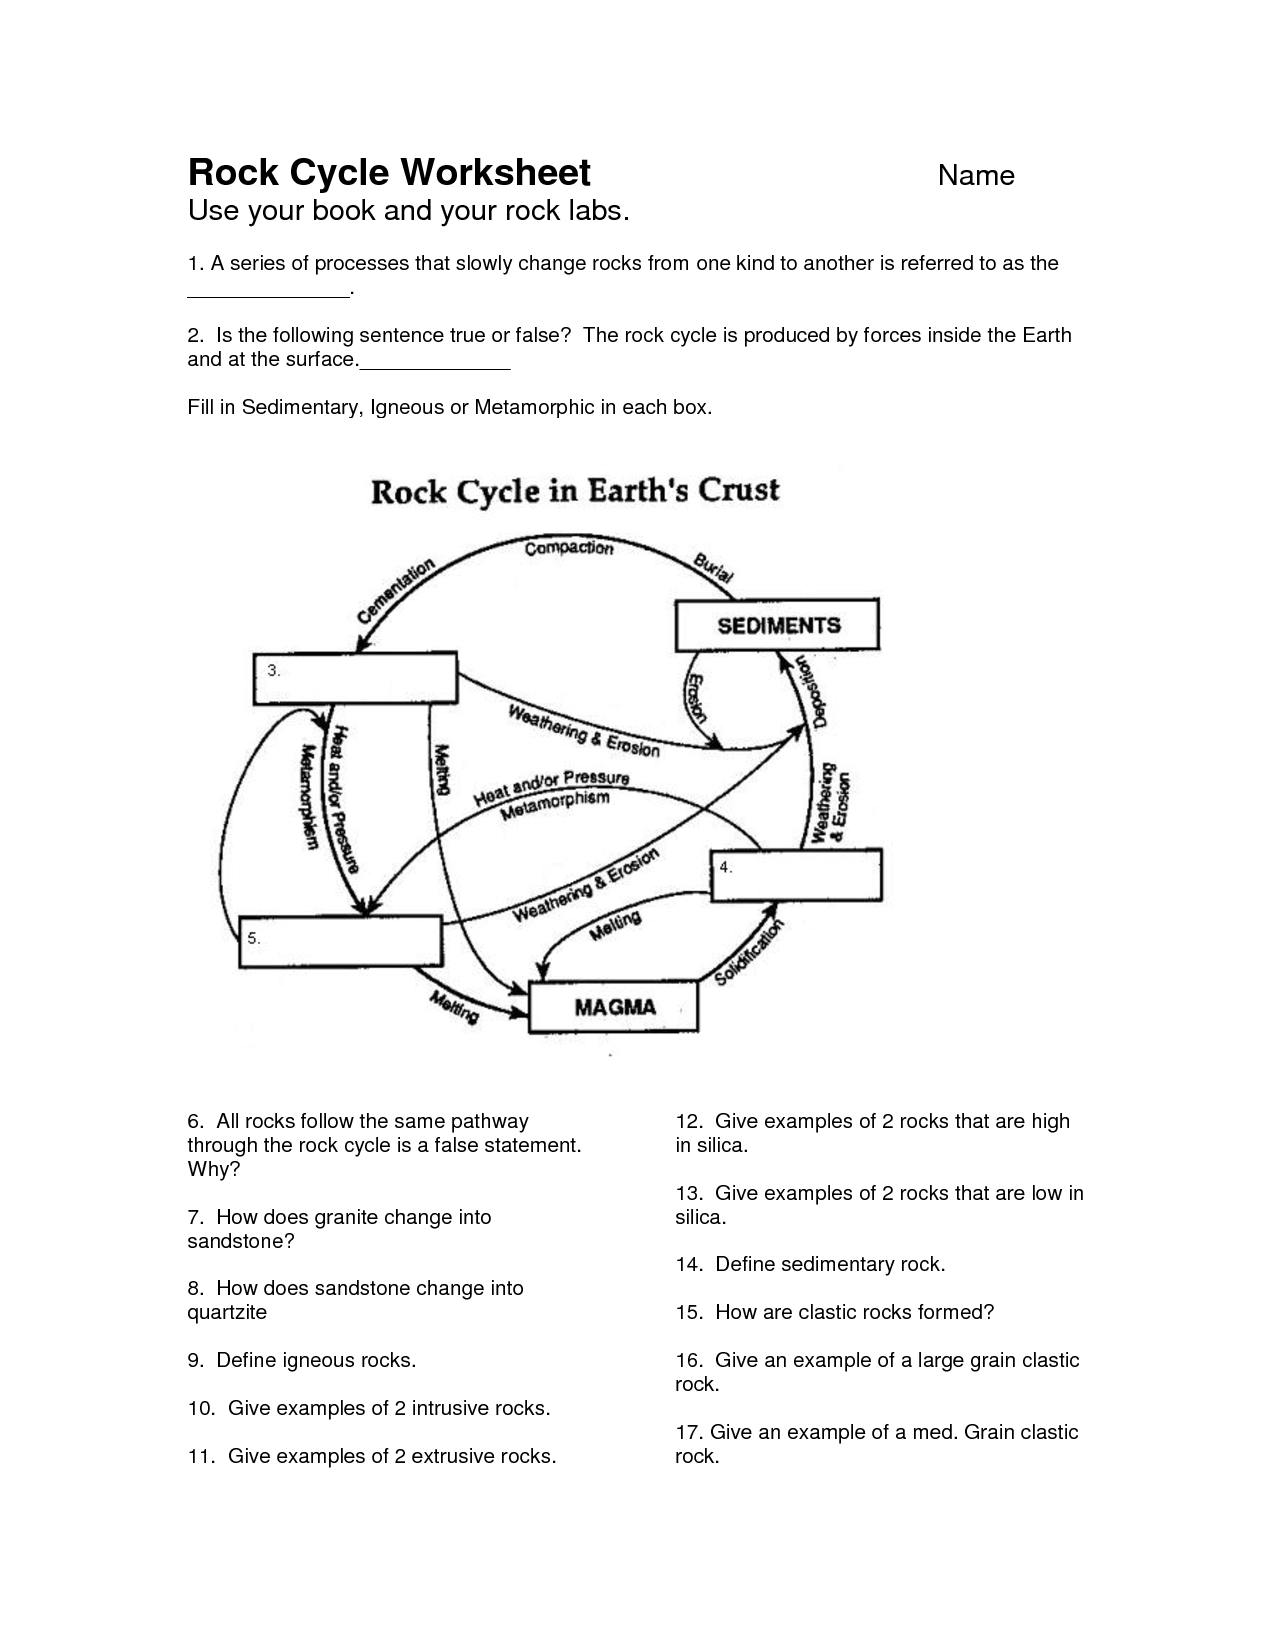 rock cycle worksheet google search earth science rock cycle worksheets rock. Black Bedroom Furniture Sets. Home Design Ideas